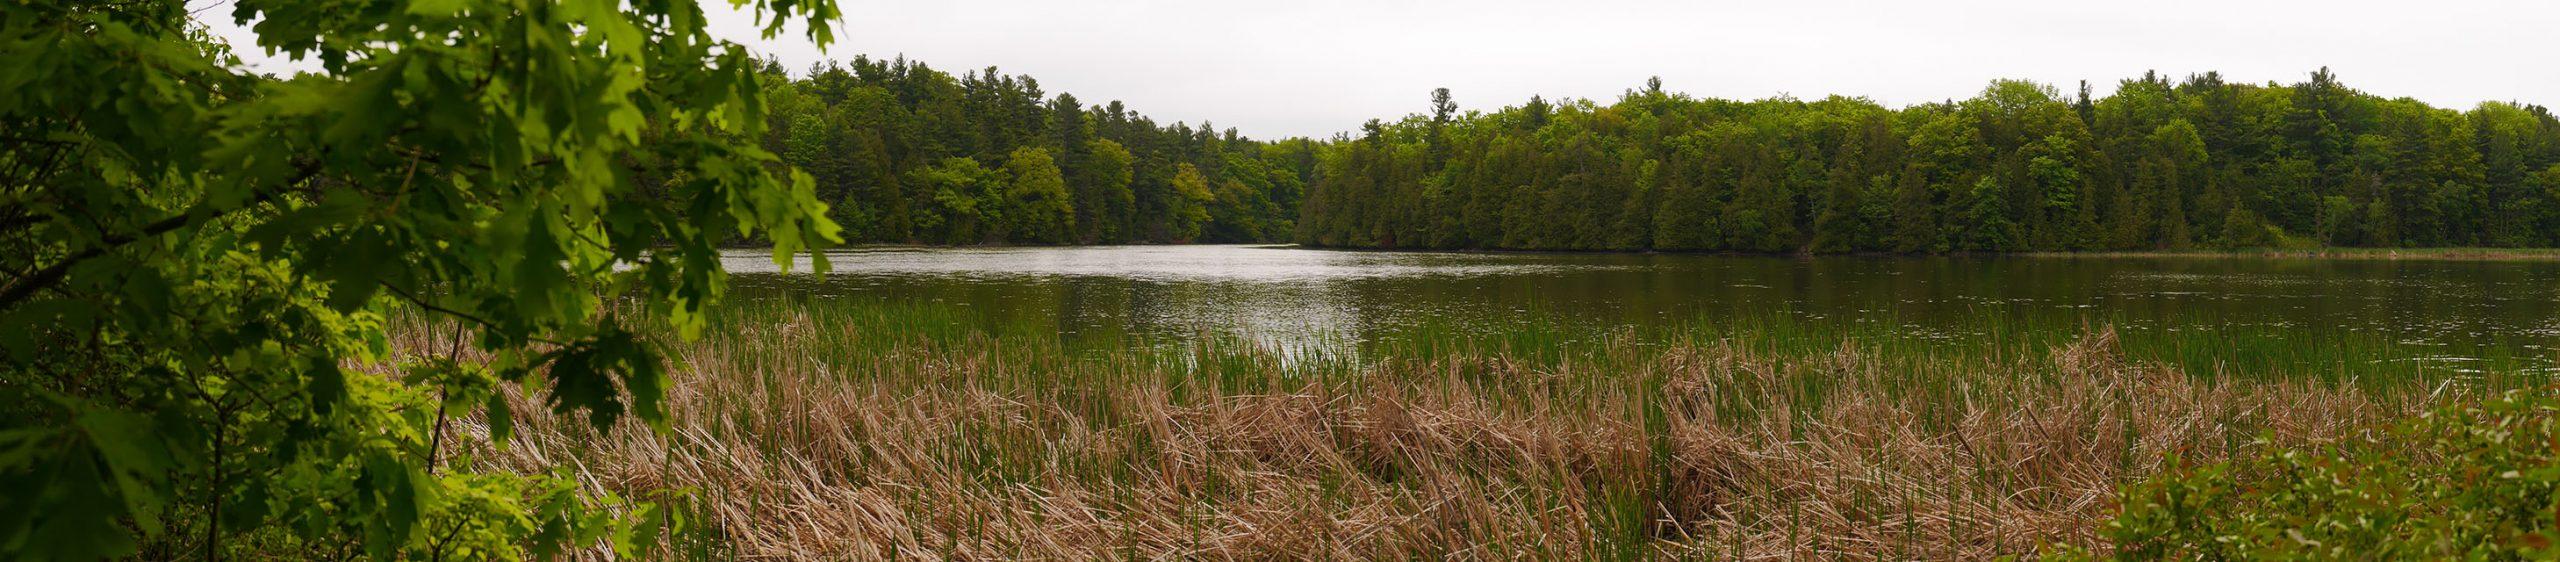 View of wetlands at Parrott's Bay Conservation Area